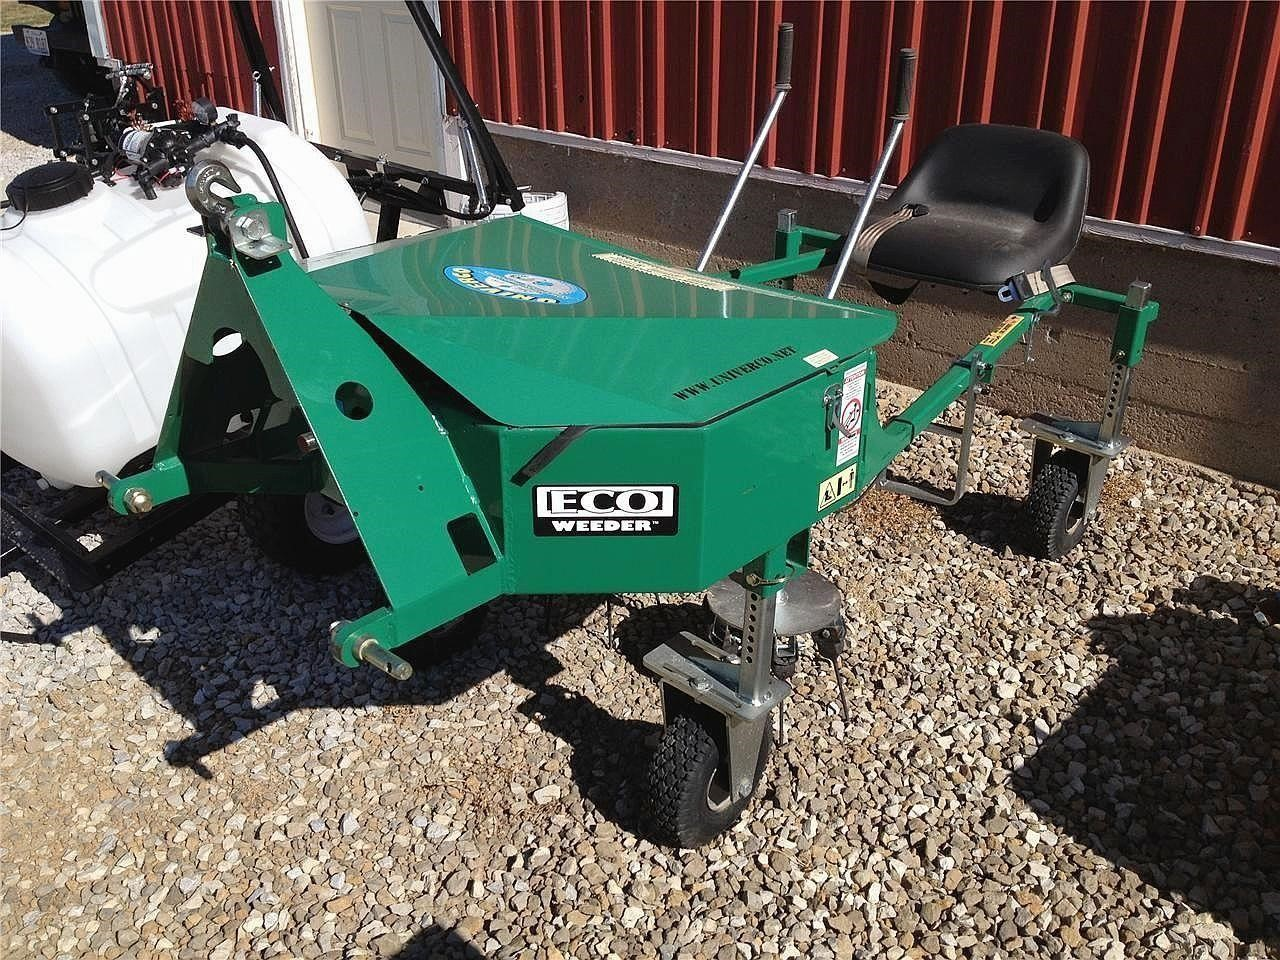 2020 UNIVERCO ECO WEEDER Lawn and Garden